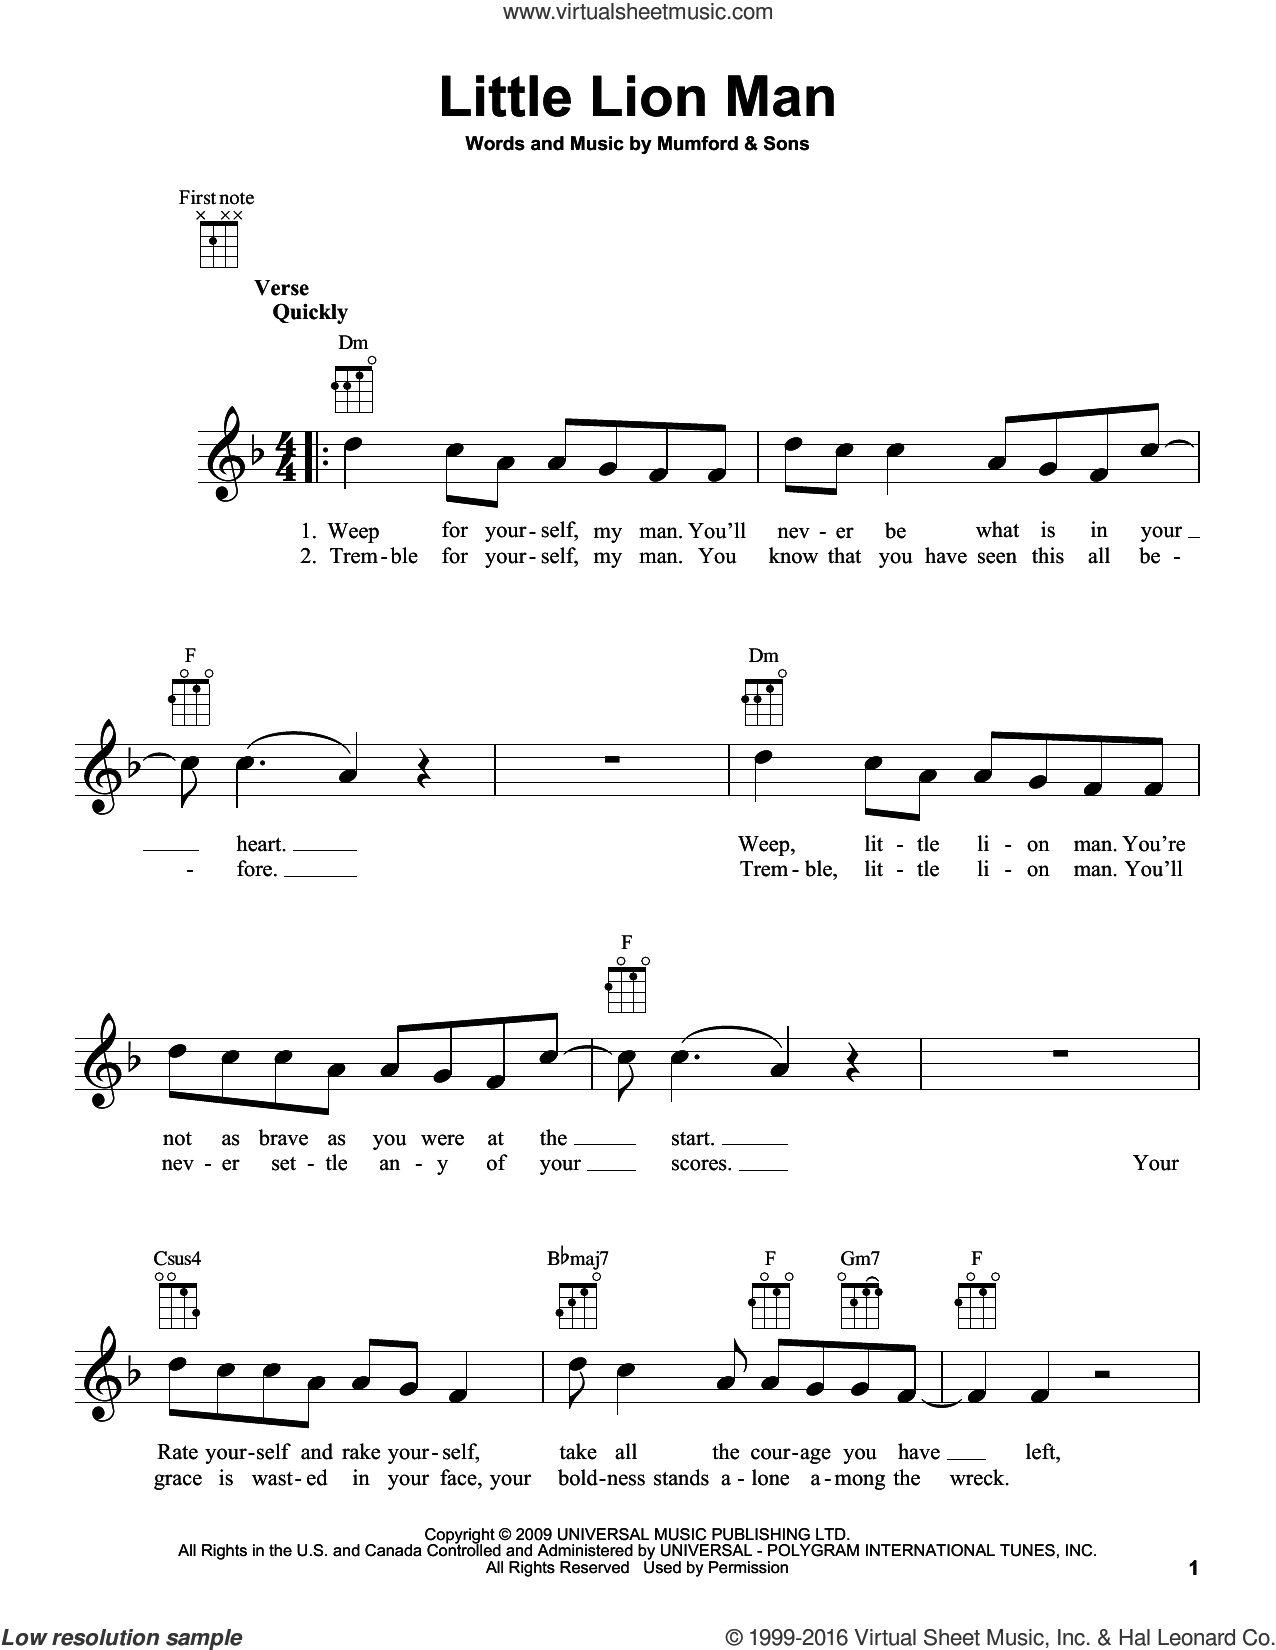 Little Lion Man sheet music for ukulele by Mumford & Sons, intermediate skill level